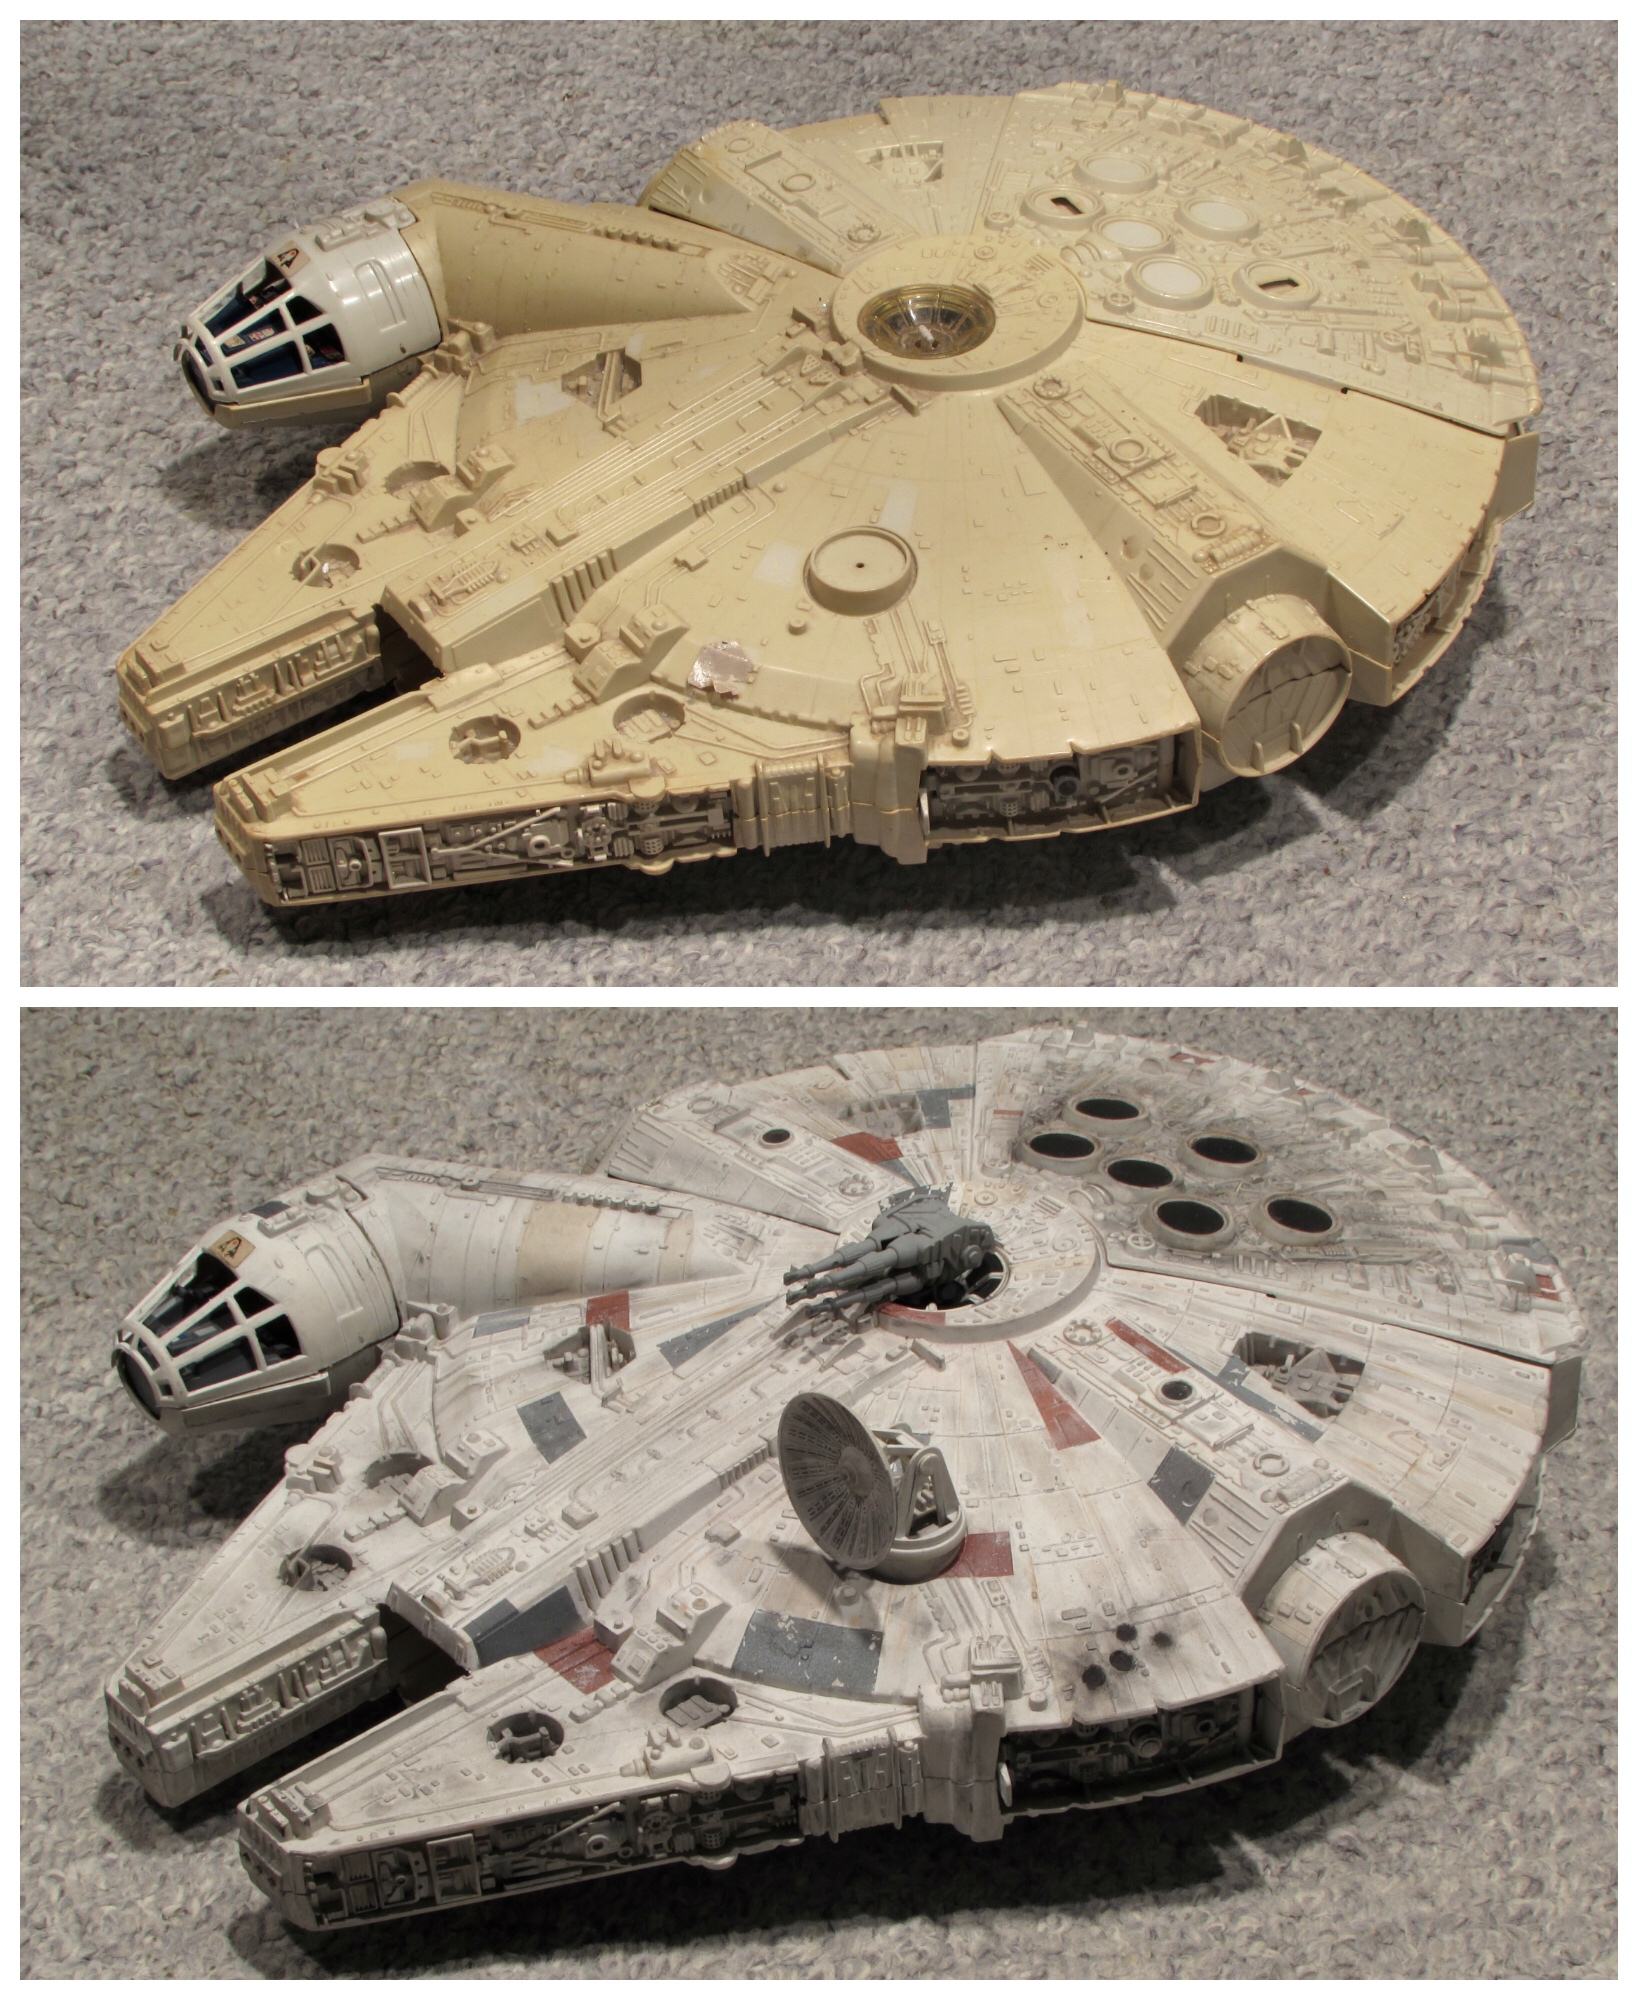 This guy dug up his old Millennium Falcon and completely restored it to hand down to his kid. Complete rock star.